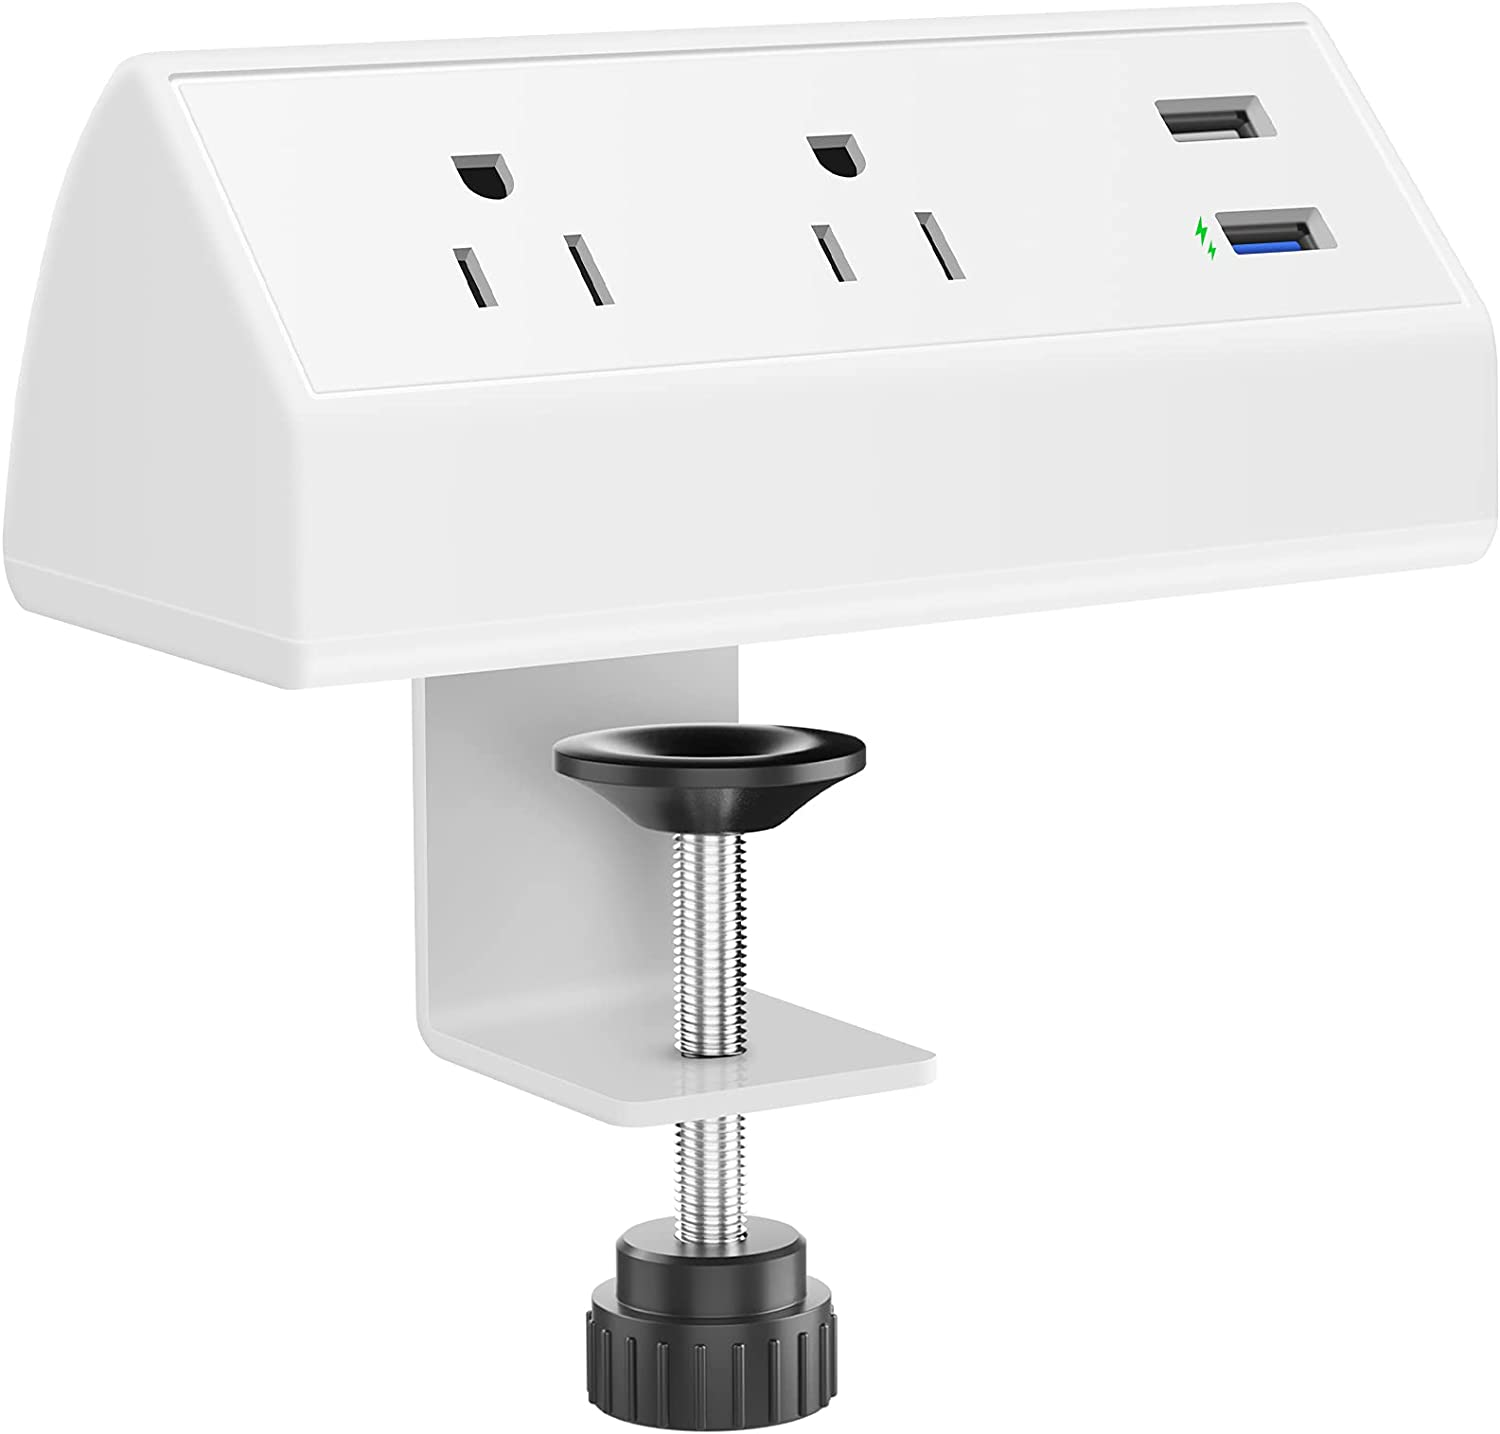 CCCEI Fast Charging Desk Clamp Power Strip, QC3.0 USB Port, 500J Surge Protector on Desktop Mount Power Strip, Fit 1.6 inch Tabletop Edge Thick. (White).